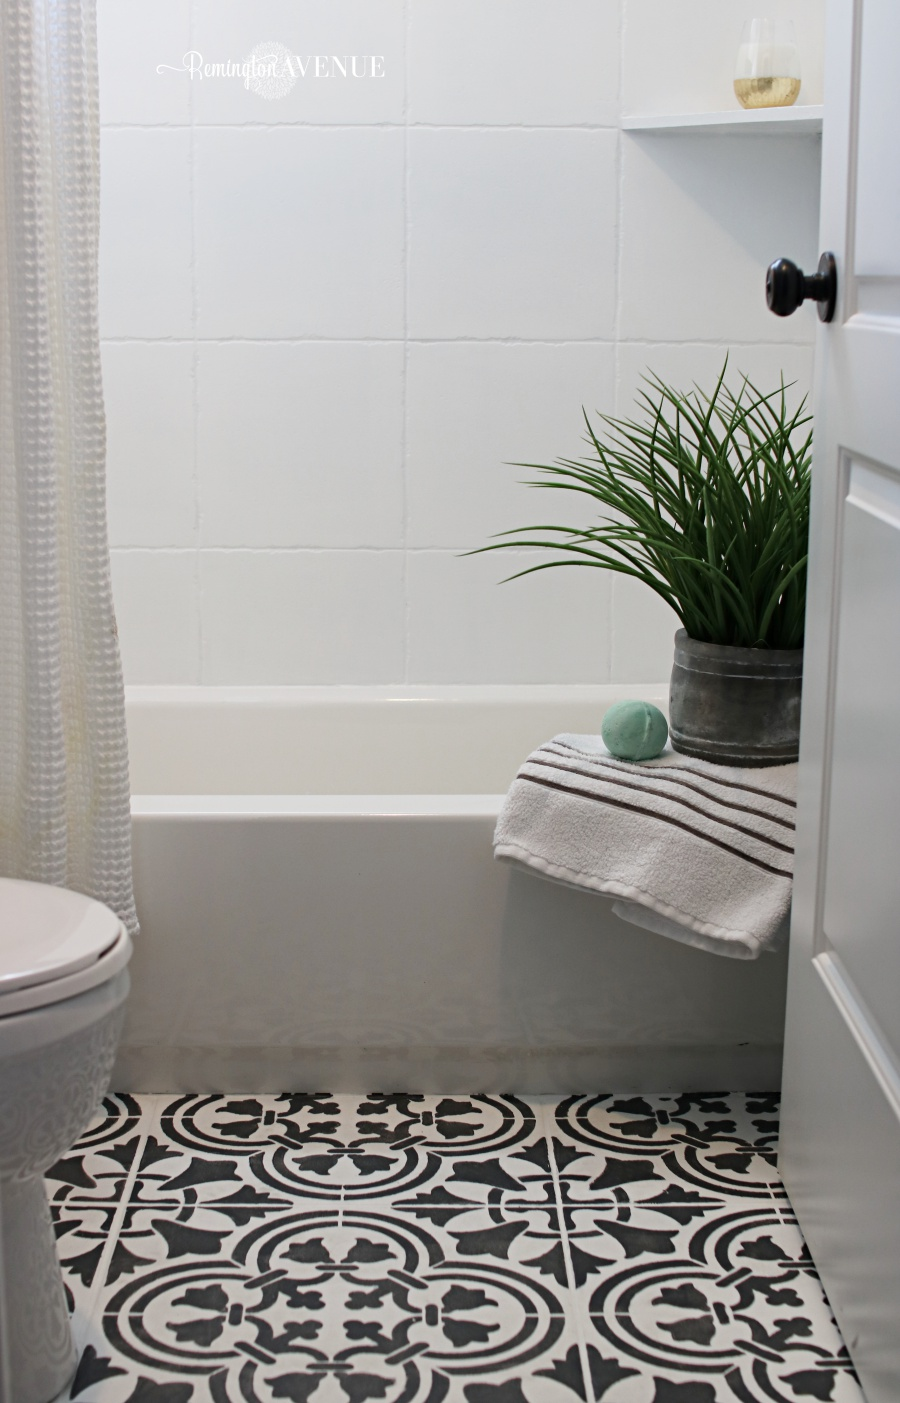 how to paint shower tile remington avenue